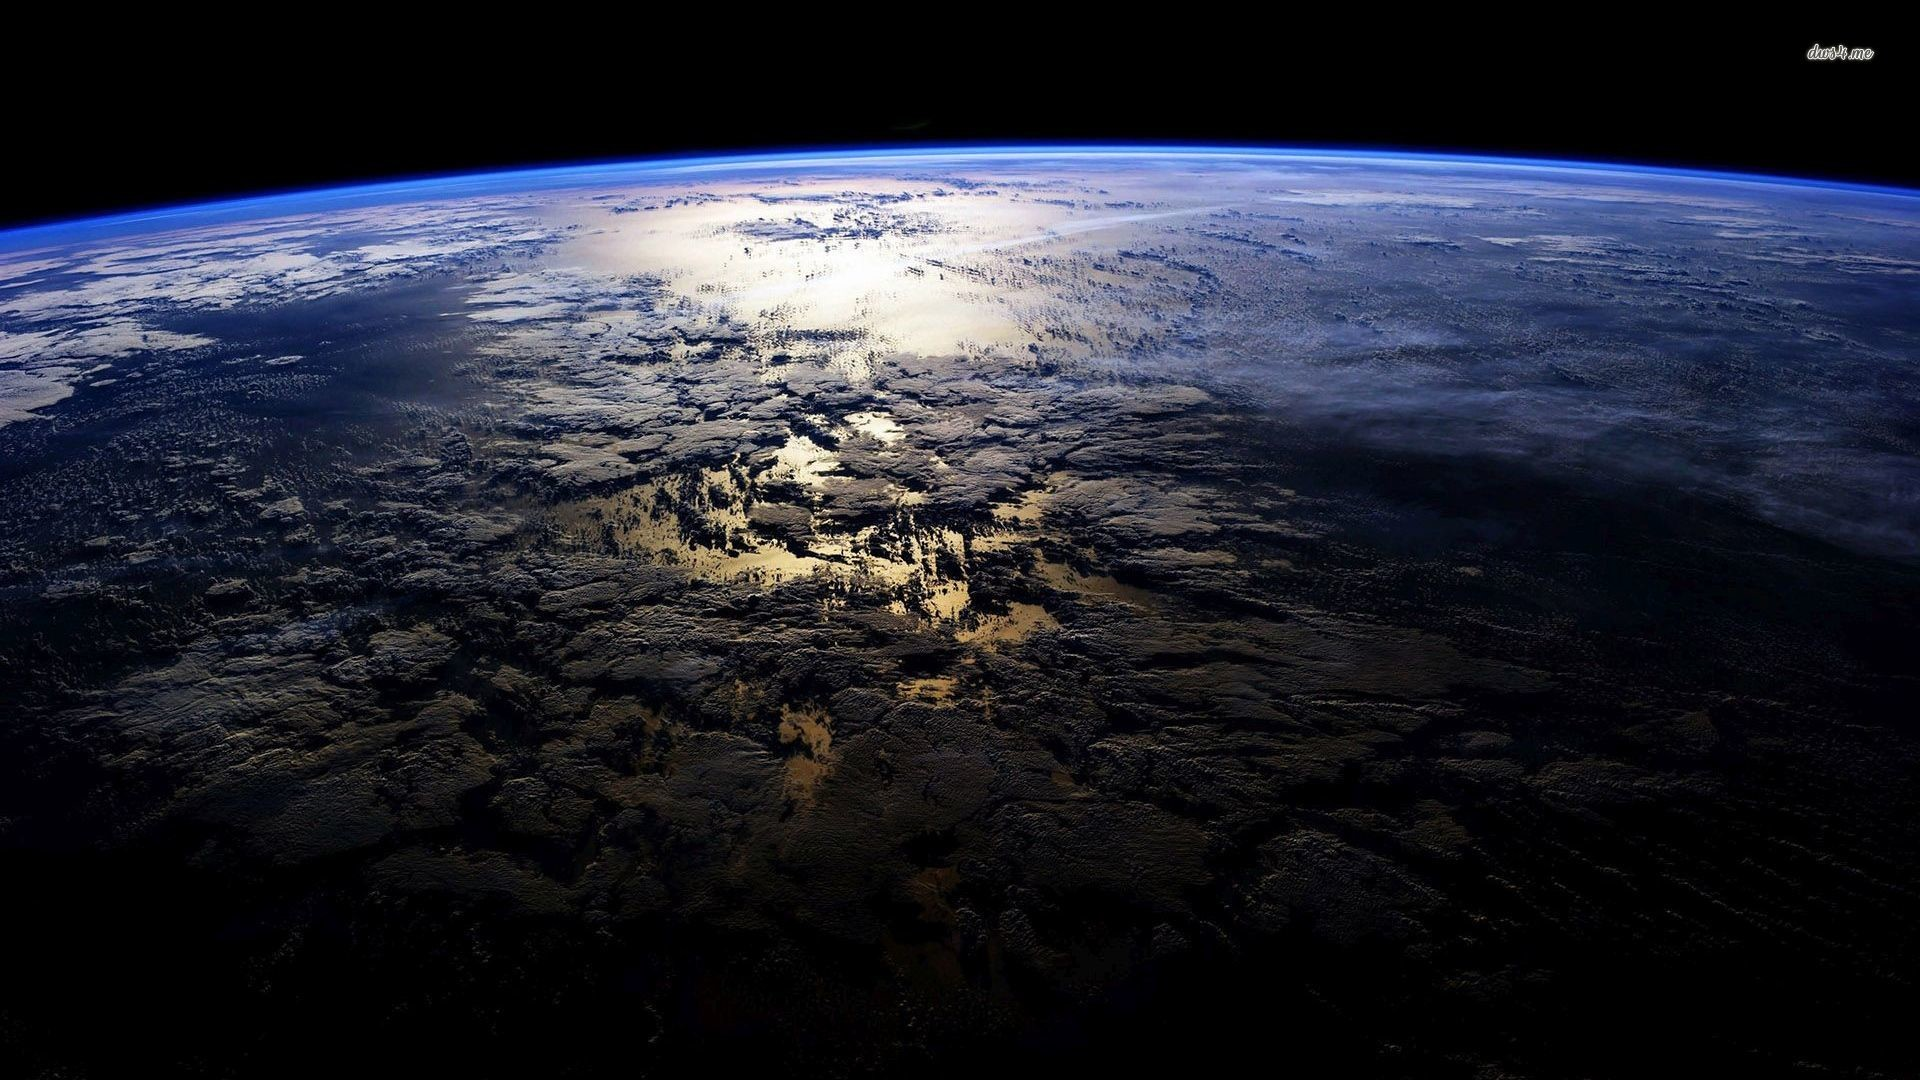 Close surface of the Earth wallpaper – Space wallpapers .